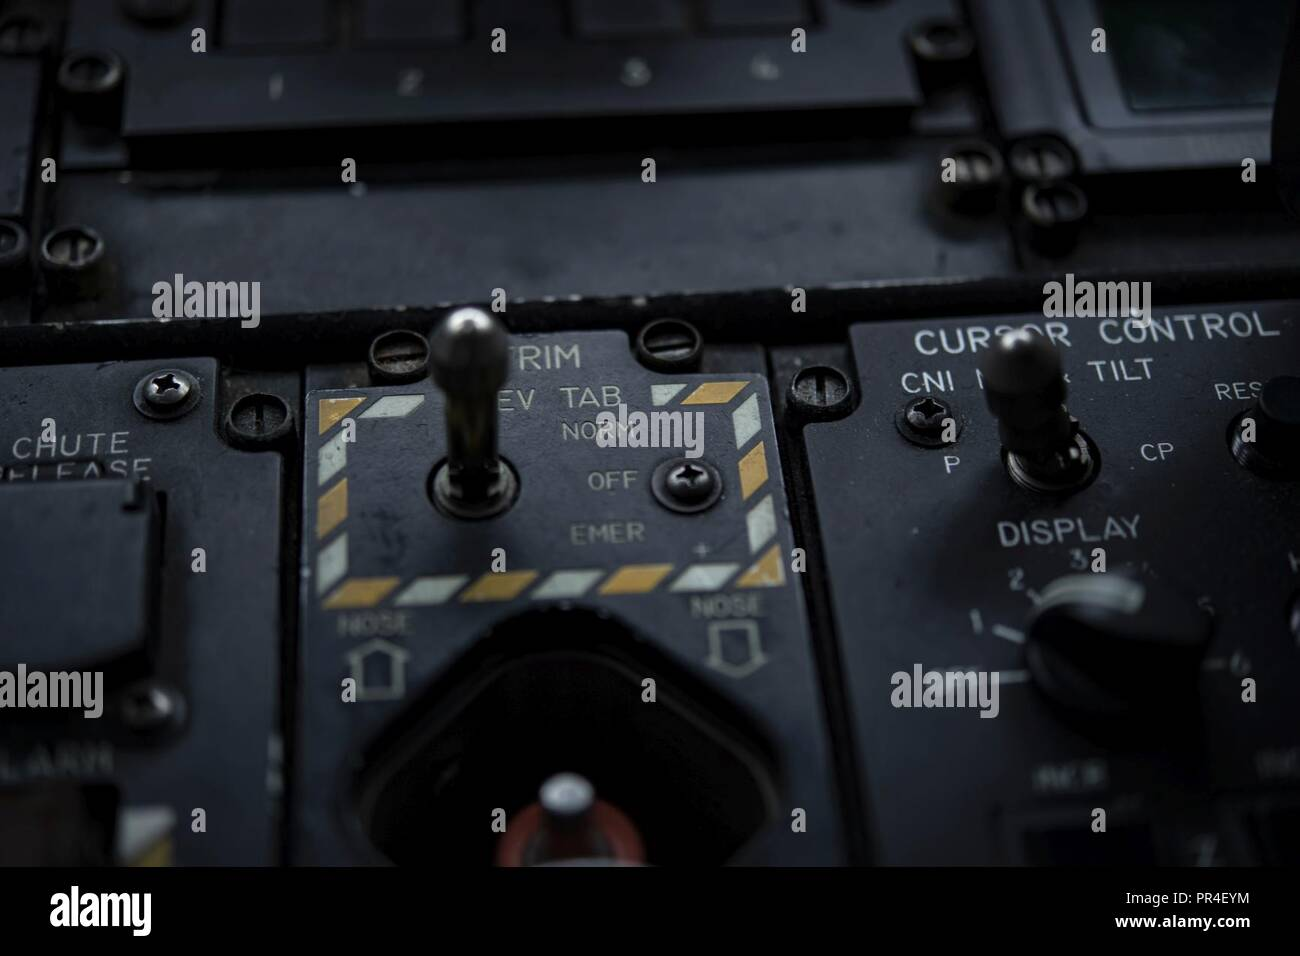 A U.S. HC-130J trim switch sits ready during a Hurricane Hunter Savanah Air National Guard Base, Savanah, GA Airport, September 12, 2018. The U.S. Air Force Reserve 53rd Weather Reconnaissance Squadron, or Hurricane Hunters, is conducting a storm tasking mission into Hurricane Florence, currently a category 4 storm. The tasking provides critical and timely weather data for the National Hurricane Center to assist in providing up-to-date and accurate information for storm forecasts. - Stock Image